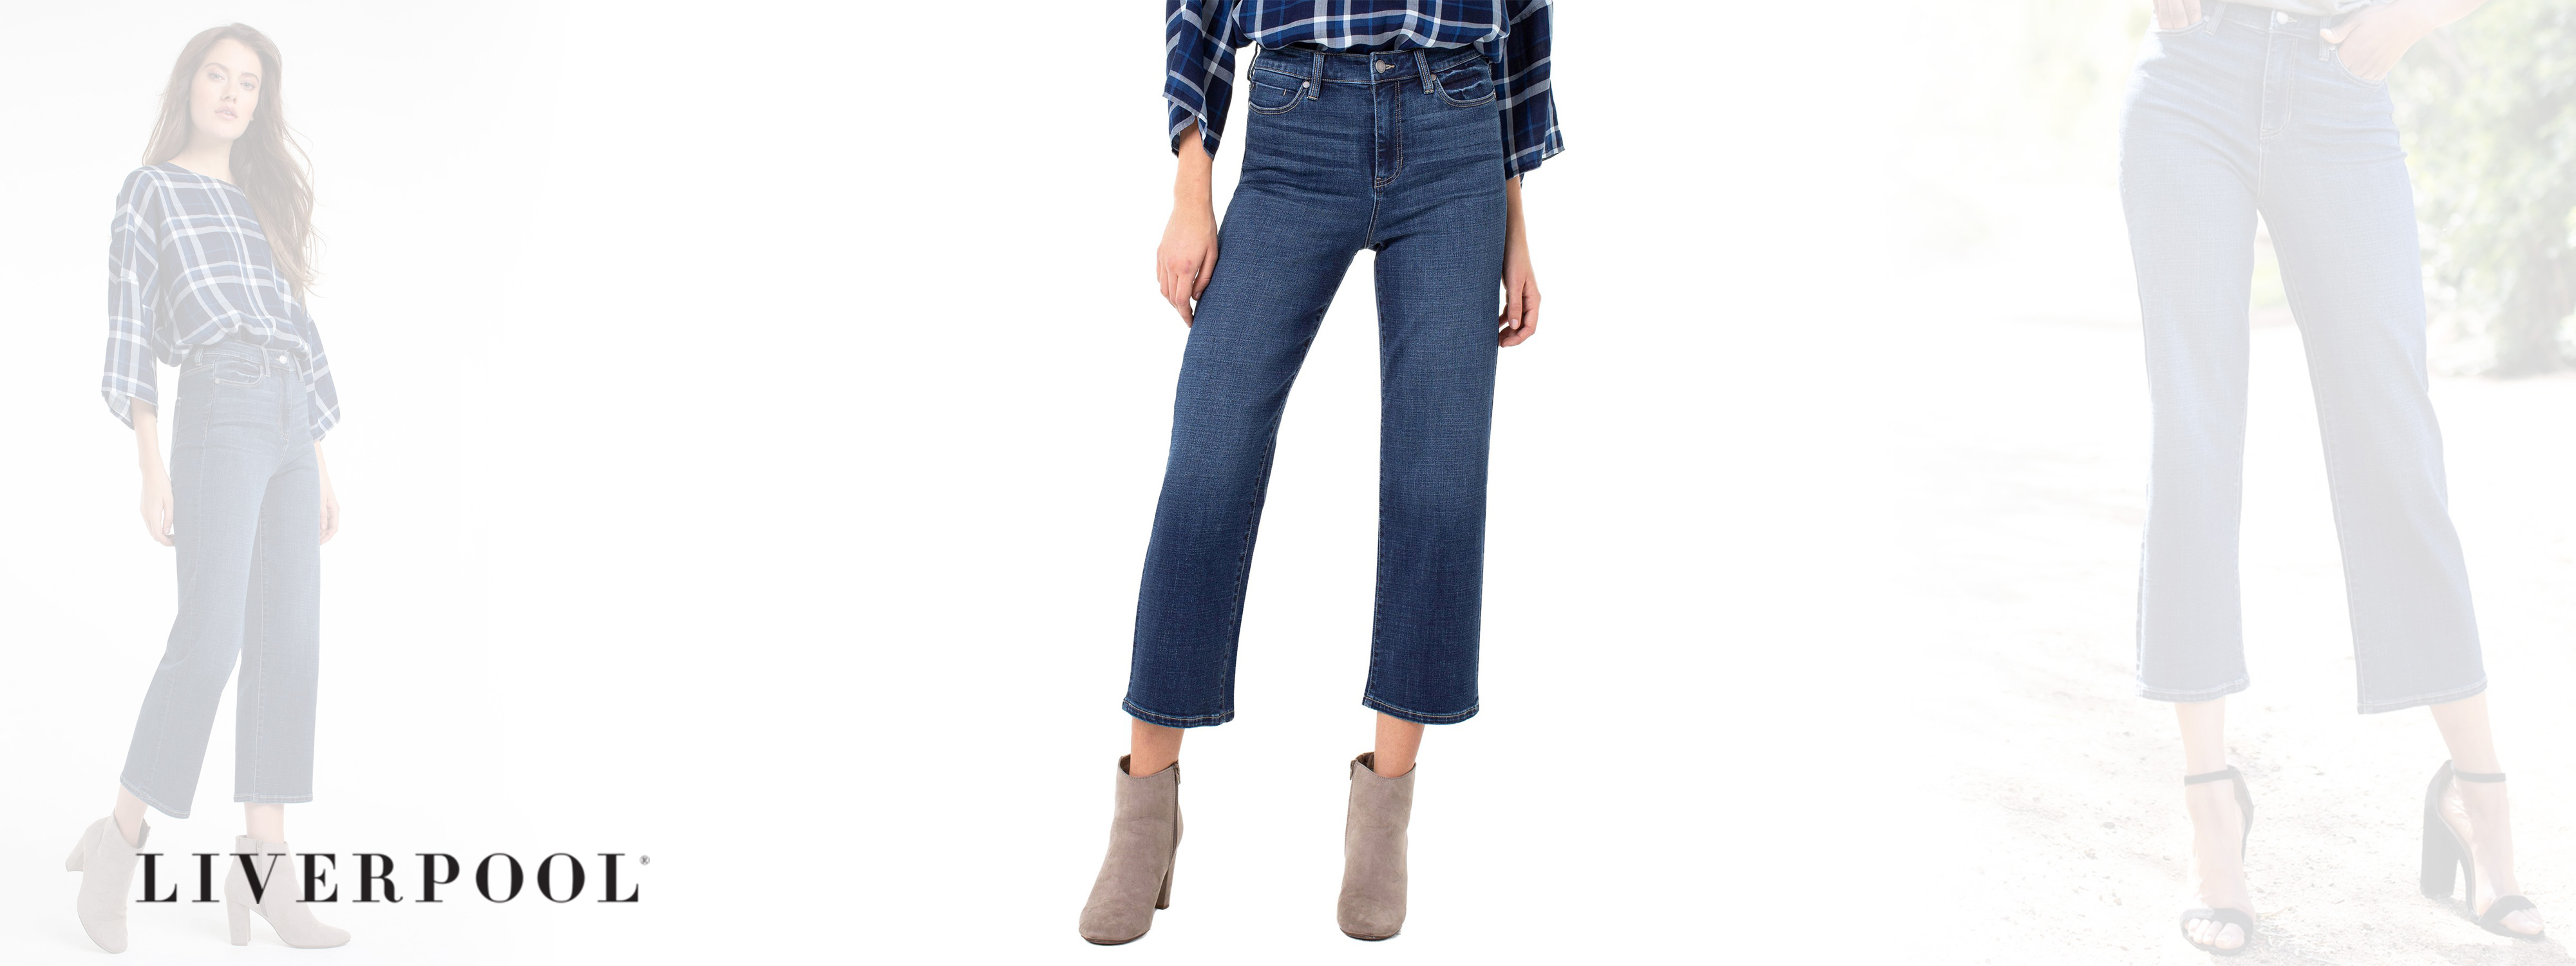 Liverpool Jeans stevie-hi-rise-stovepipe-jeans